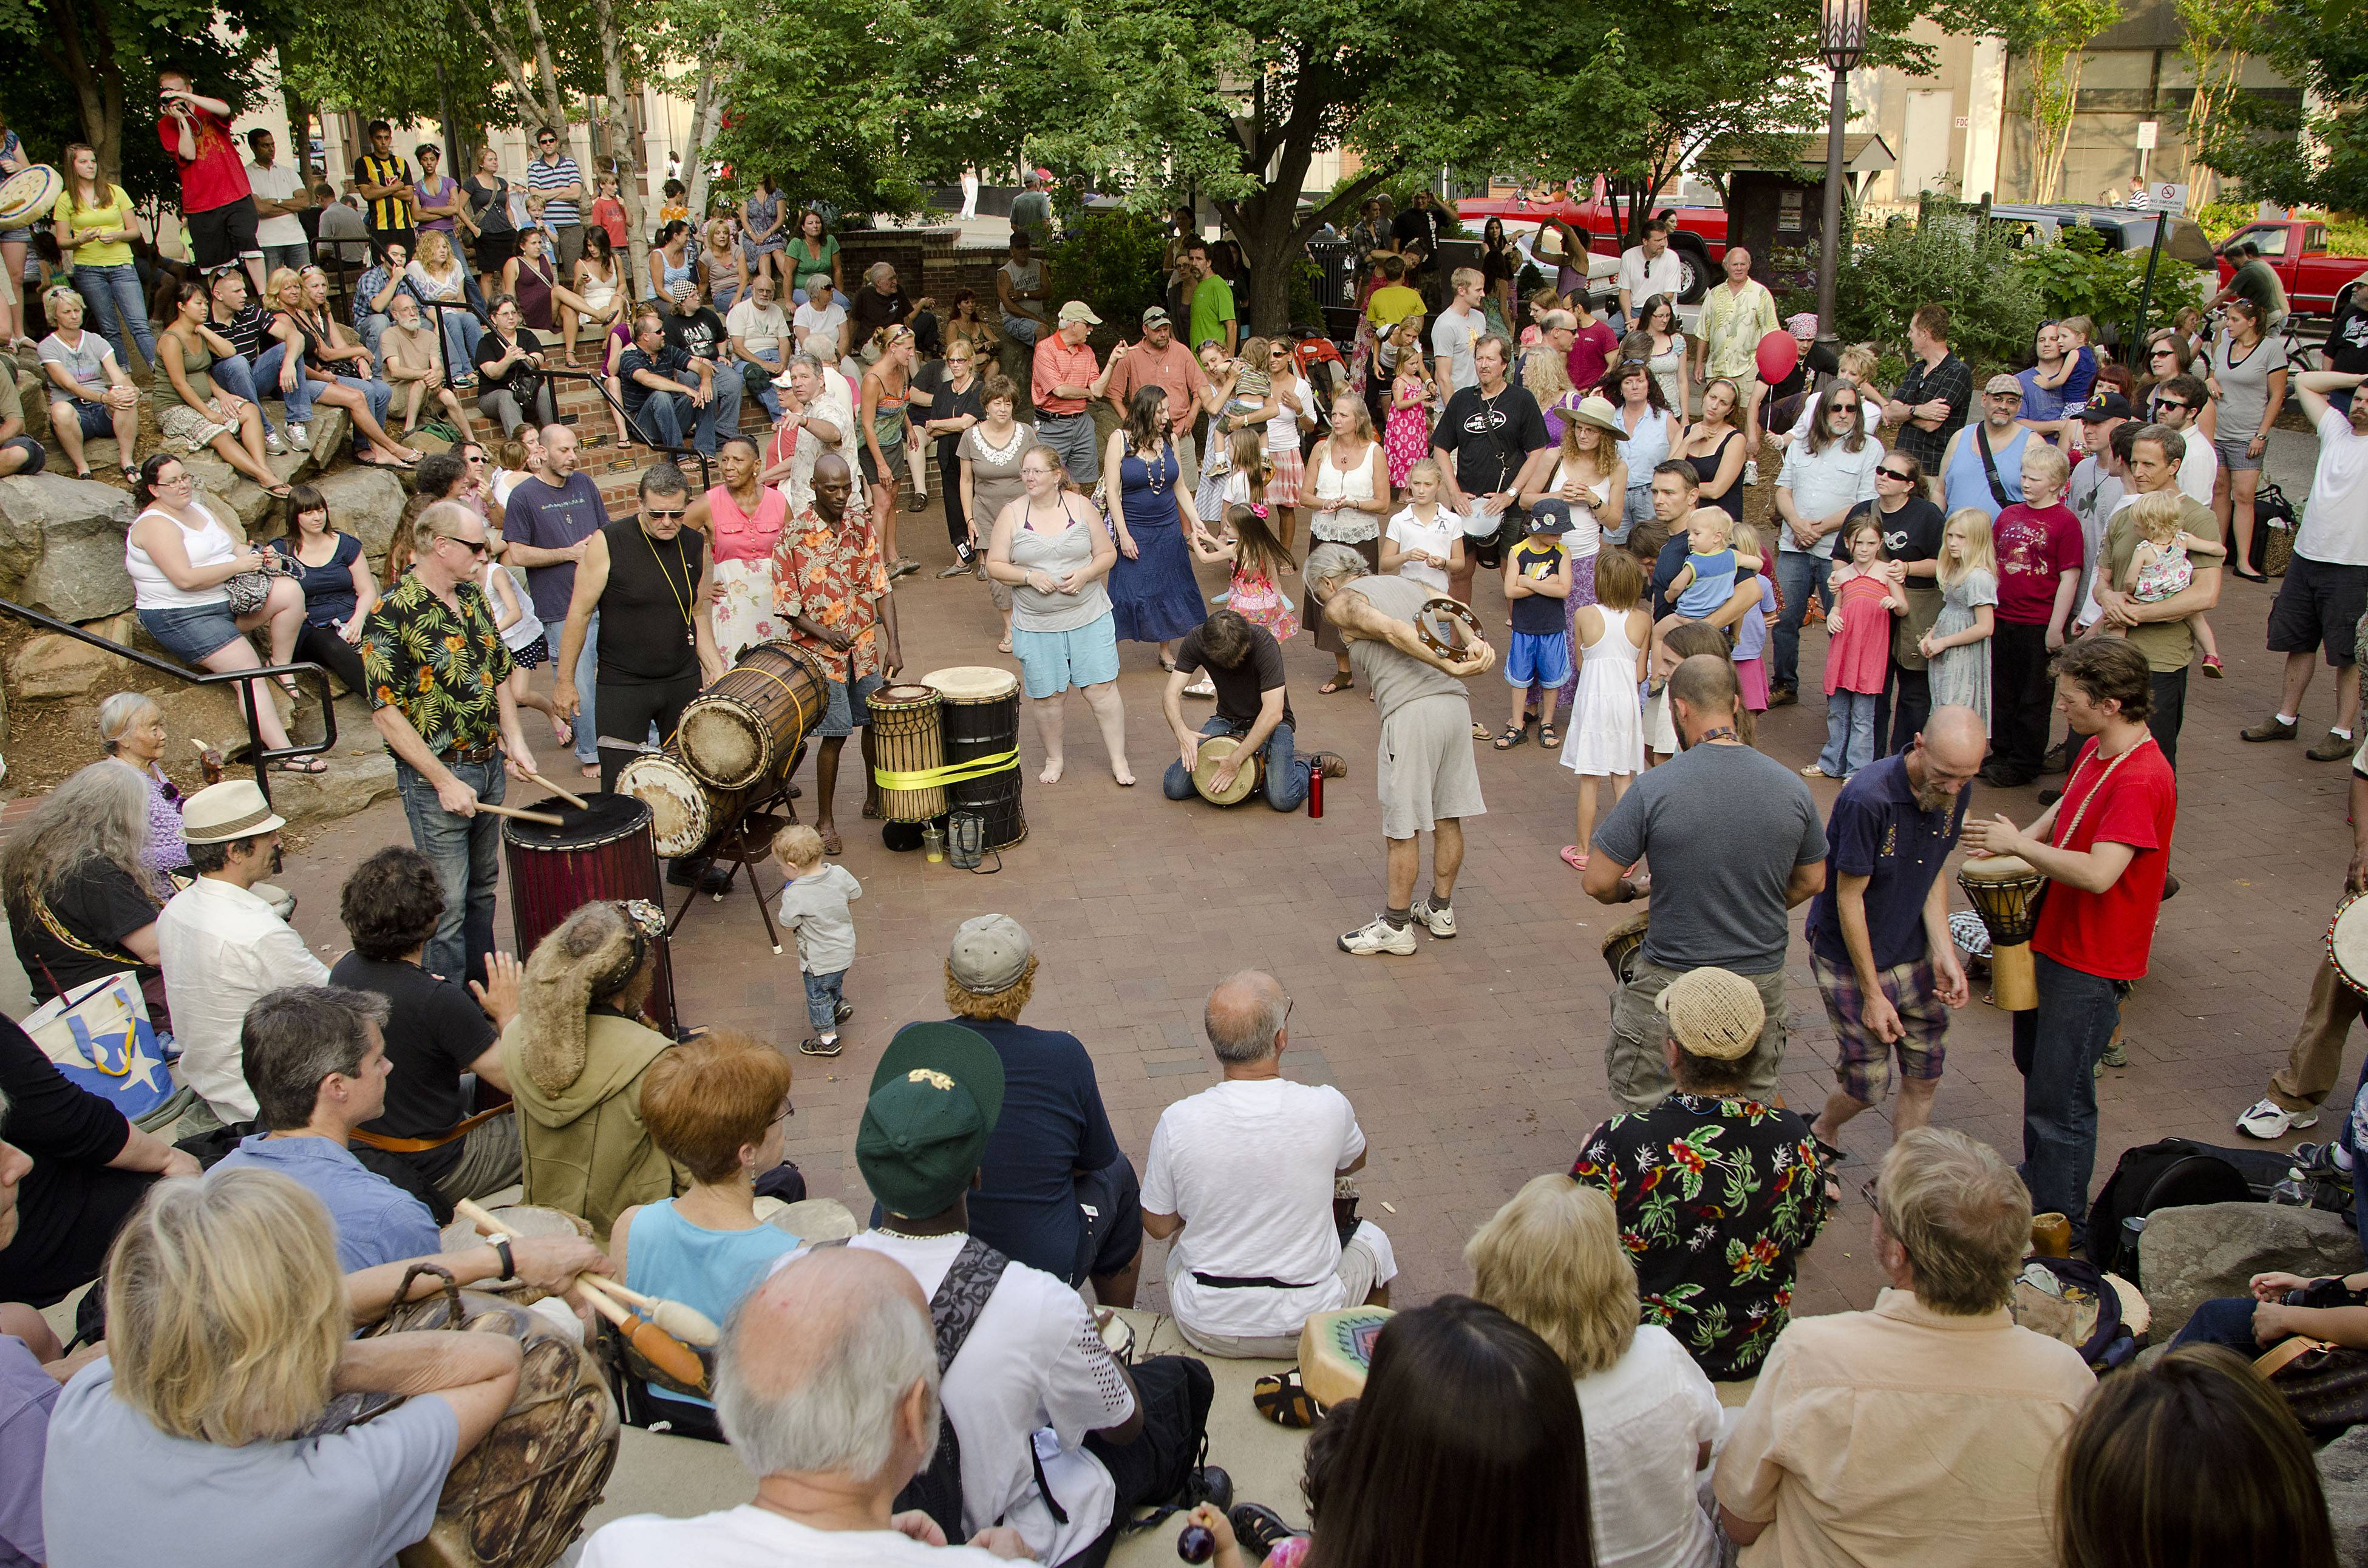 Visitors to Pritchard Park in Asheville, N.C., take in a drum circle. This gem of a city tucked in the Blue Ridge foothills of western North Carolina attracts artists, musicians, foodies and outdoor enthusiasts.